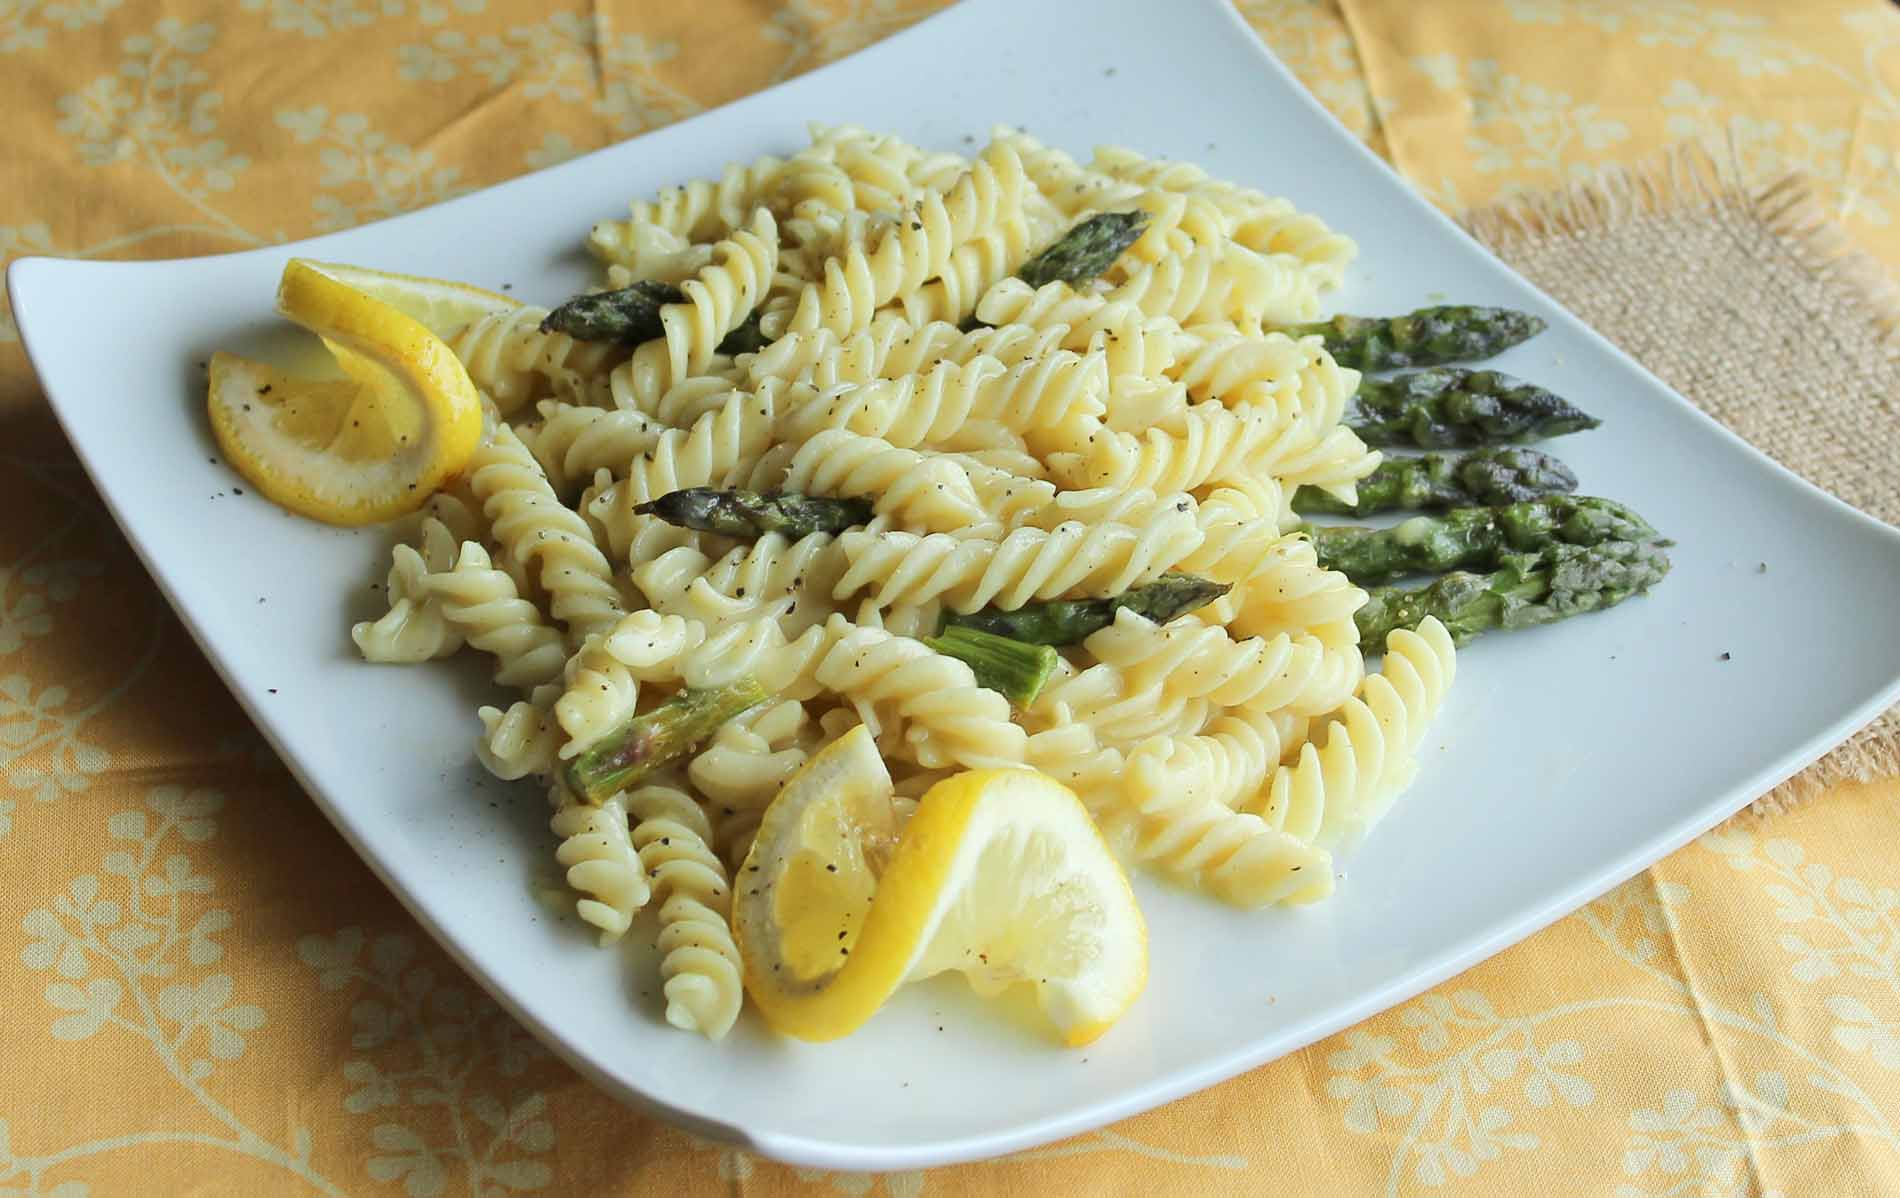 An artisan sourdough radiatori pasta dish